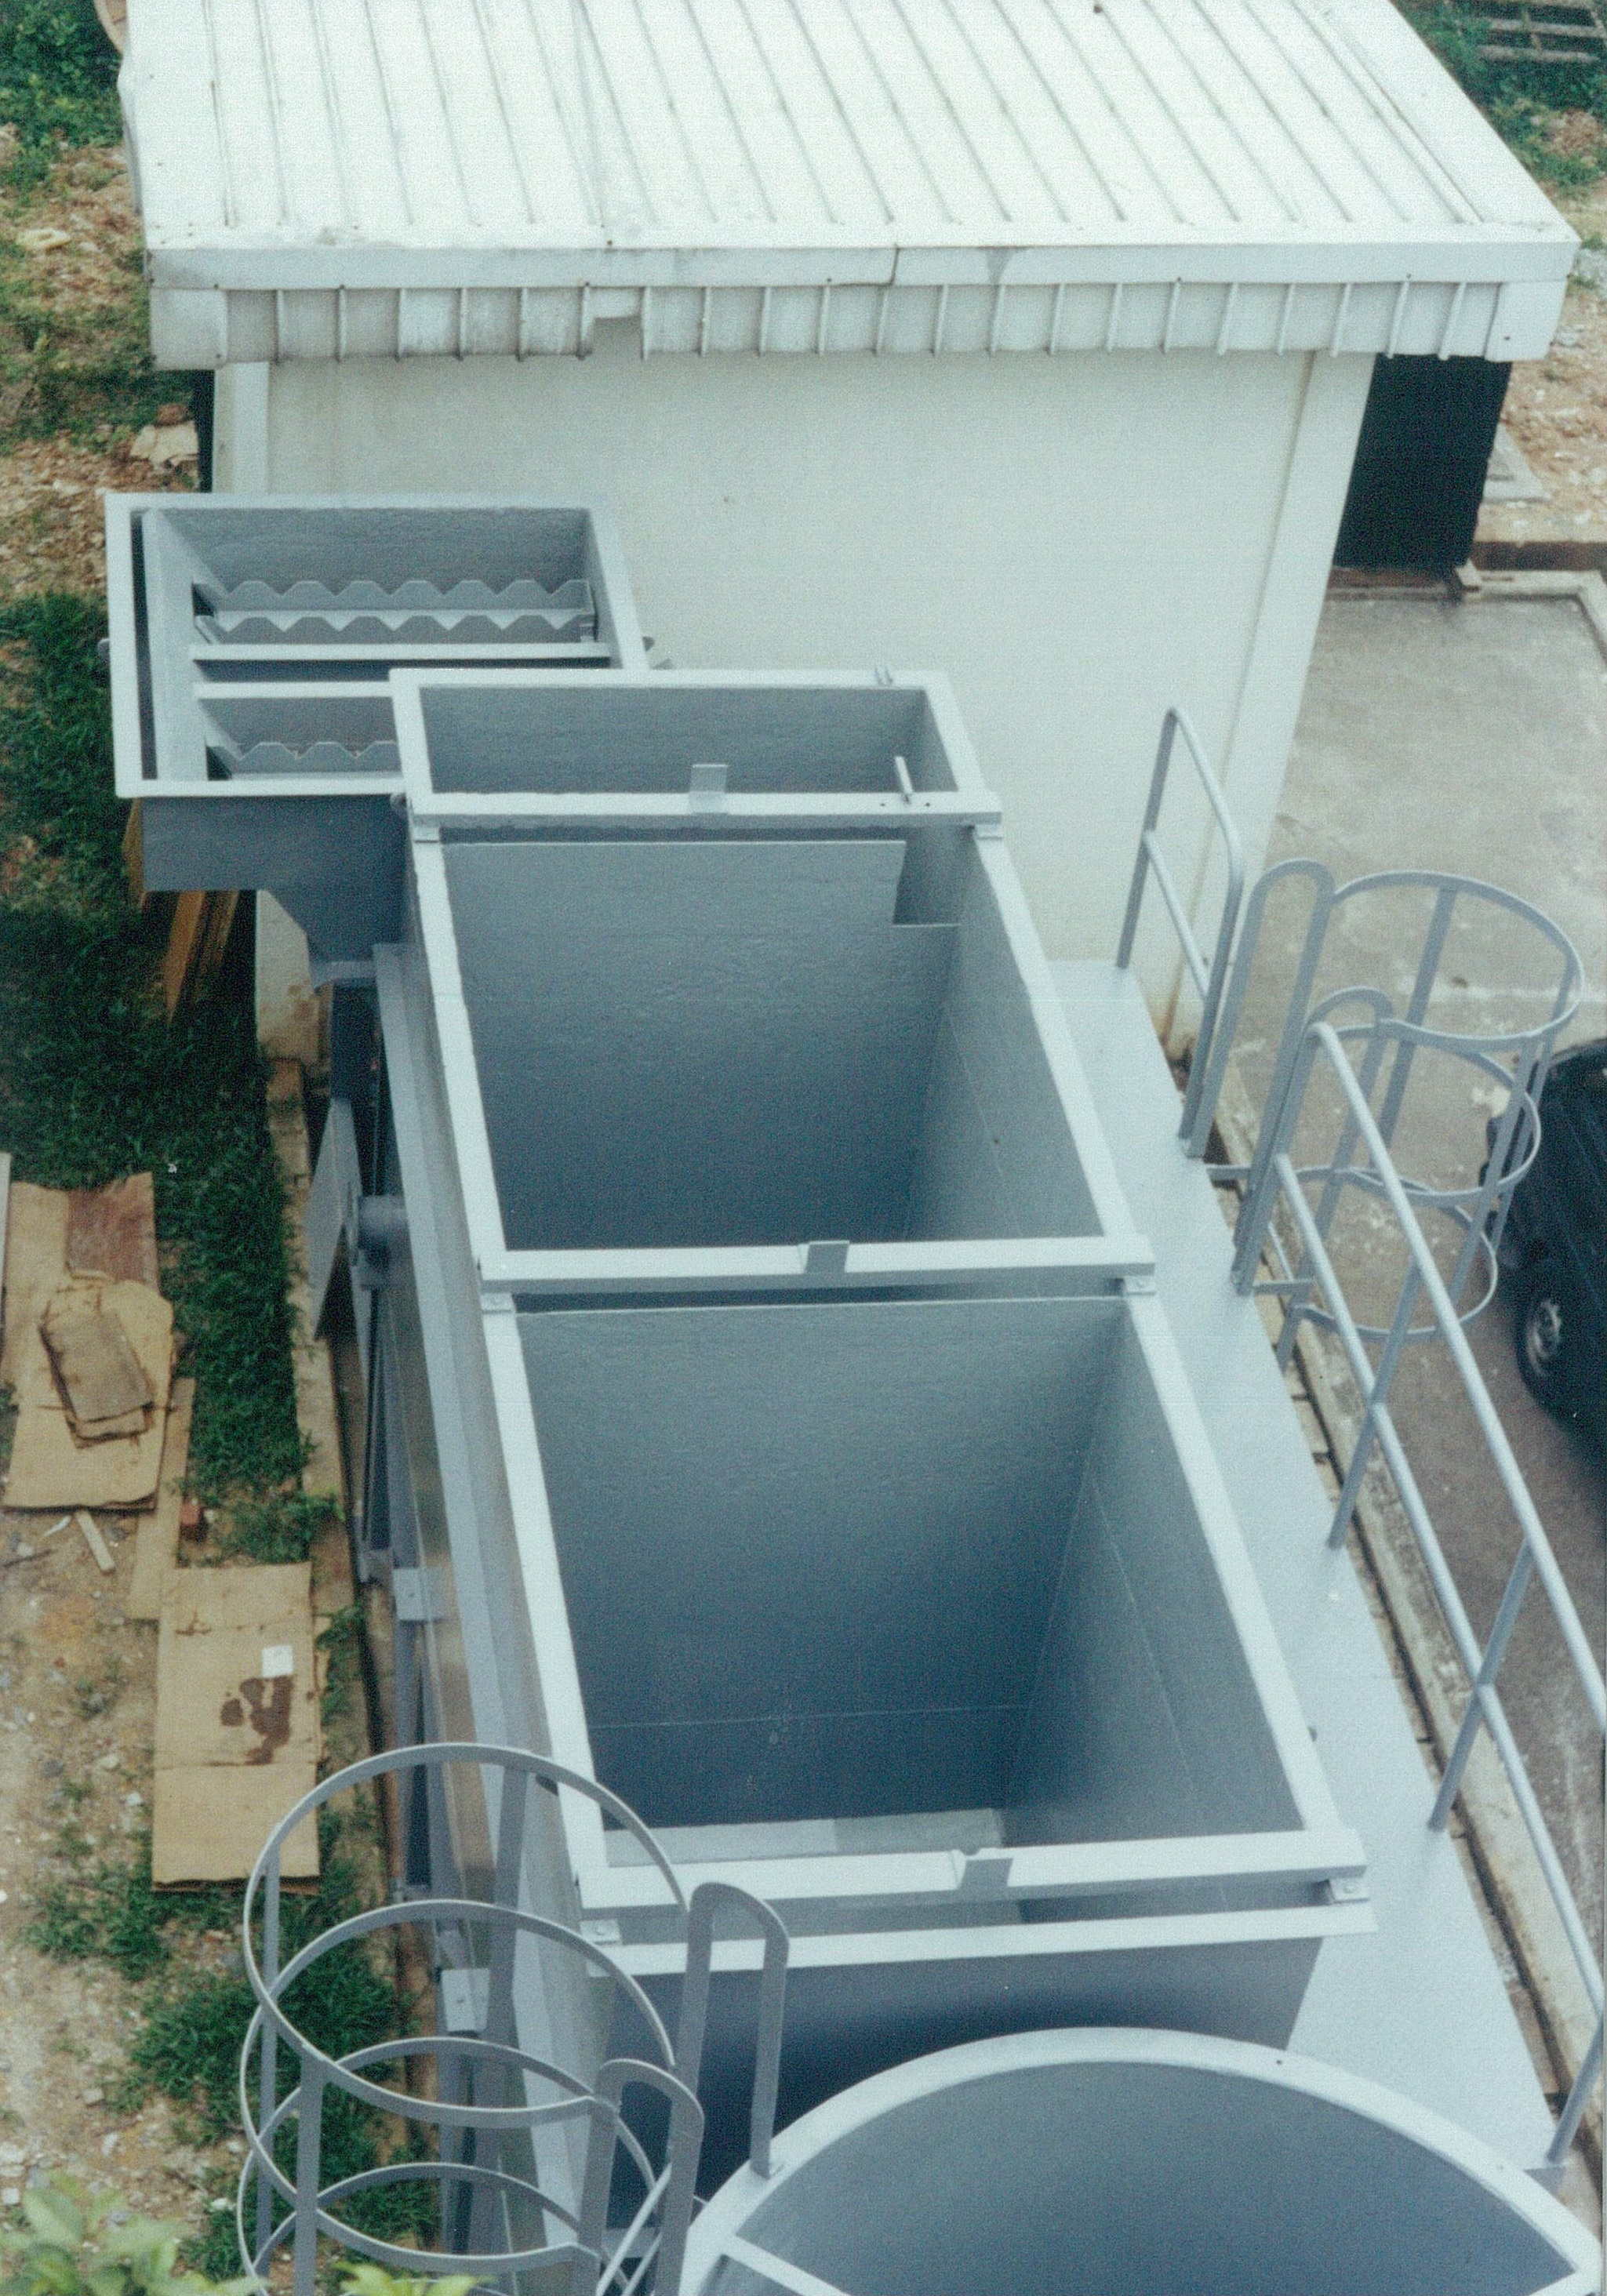 ME Tech Wastewater Treatment Tanks With Clarifier